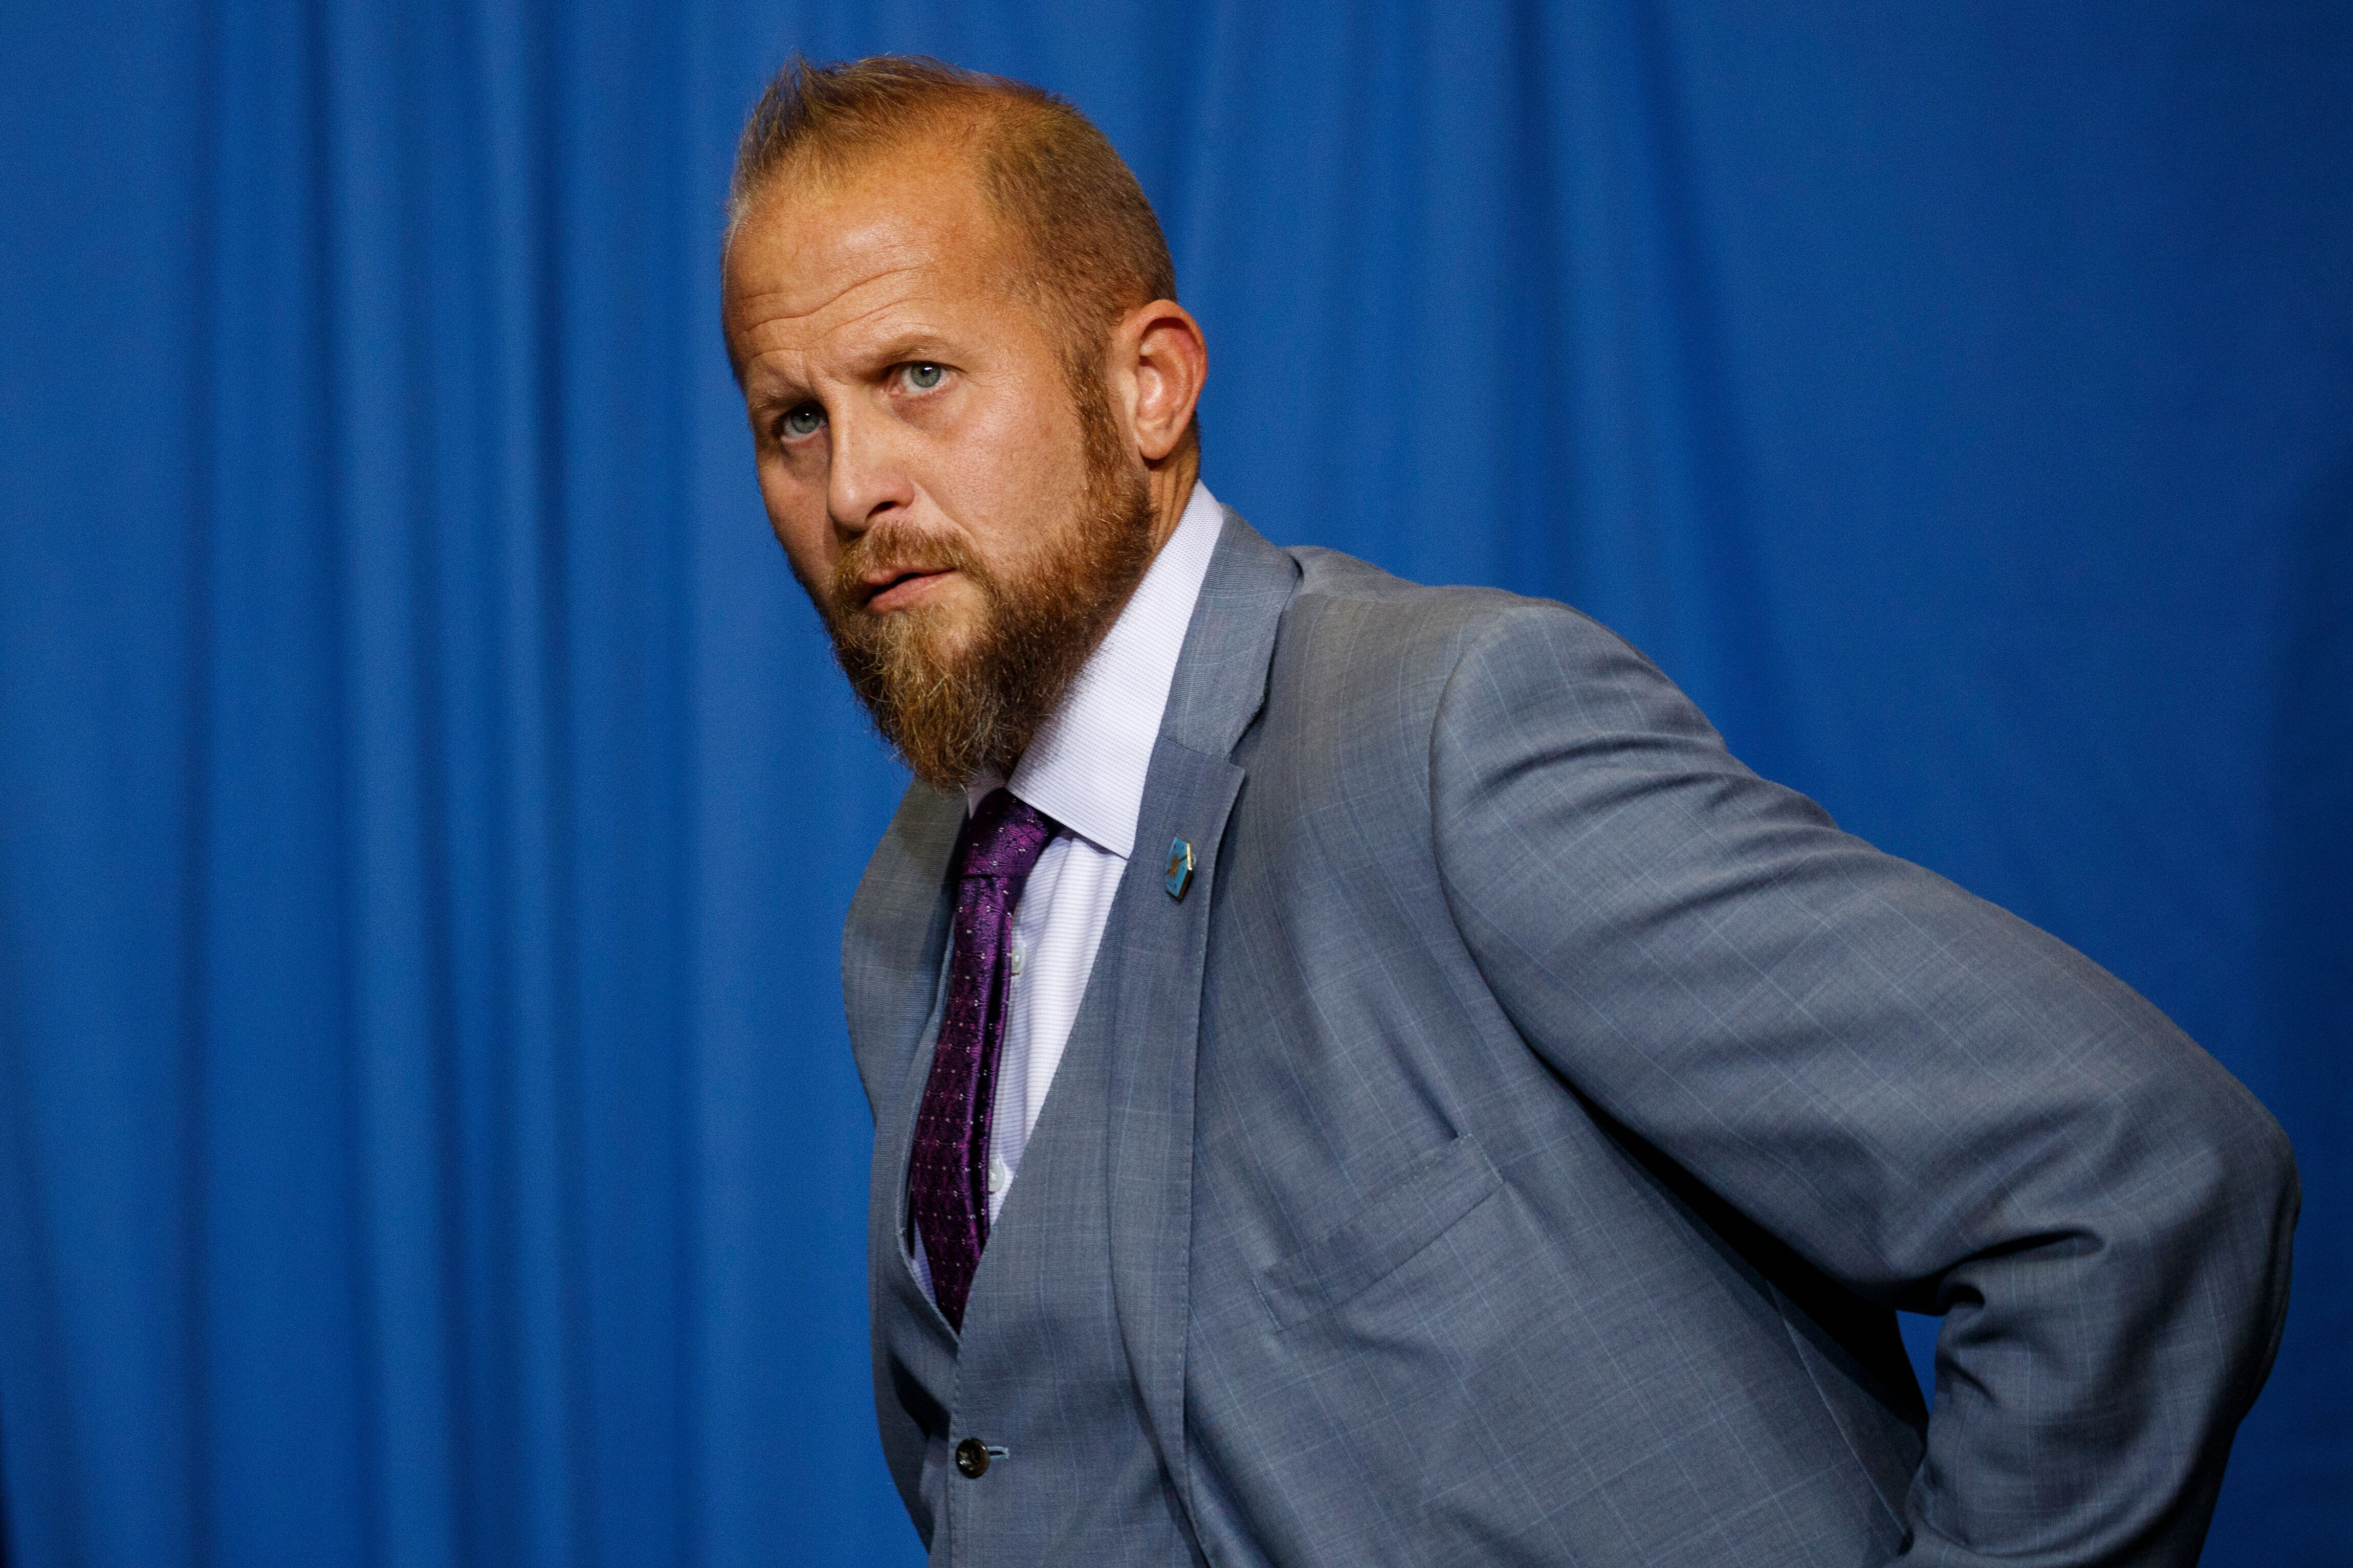 Brad Parscale, campaign manager for President Donald Trump, arrives for a campaign rally at the Landers Center Arena, Tuesday, Oct. 2, 2018, in Southaven, Miss. (AP Photo/Evan Vucci)